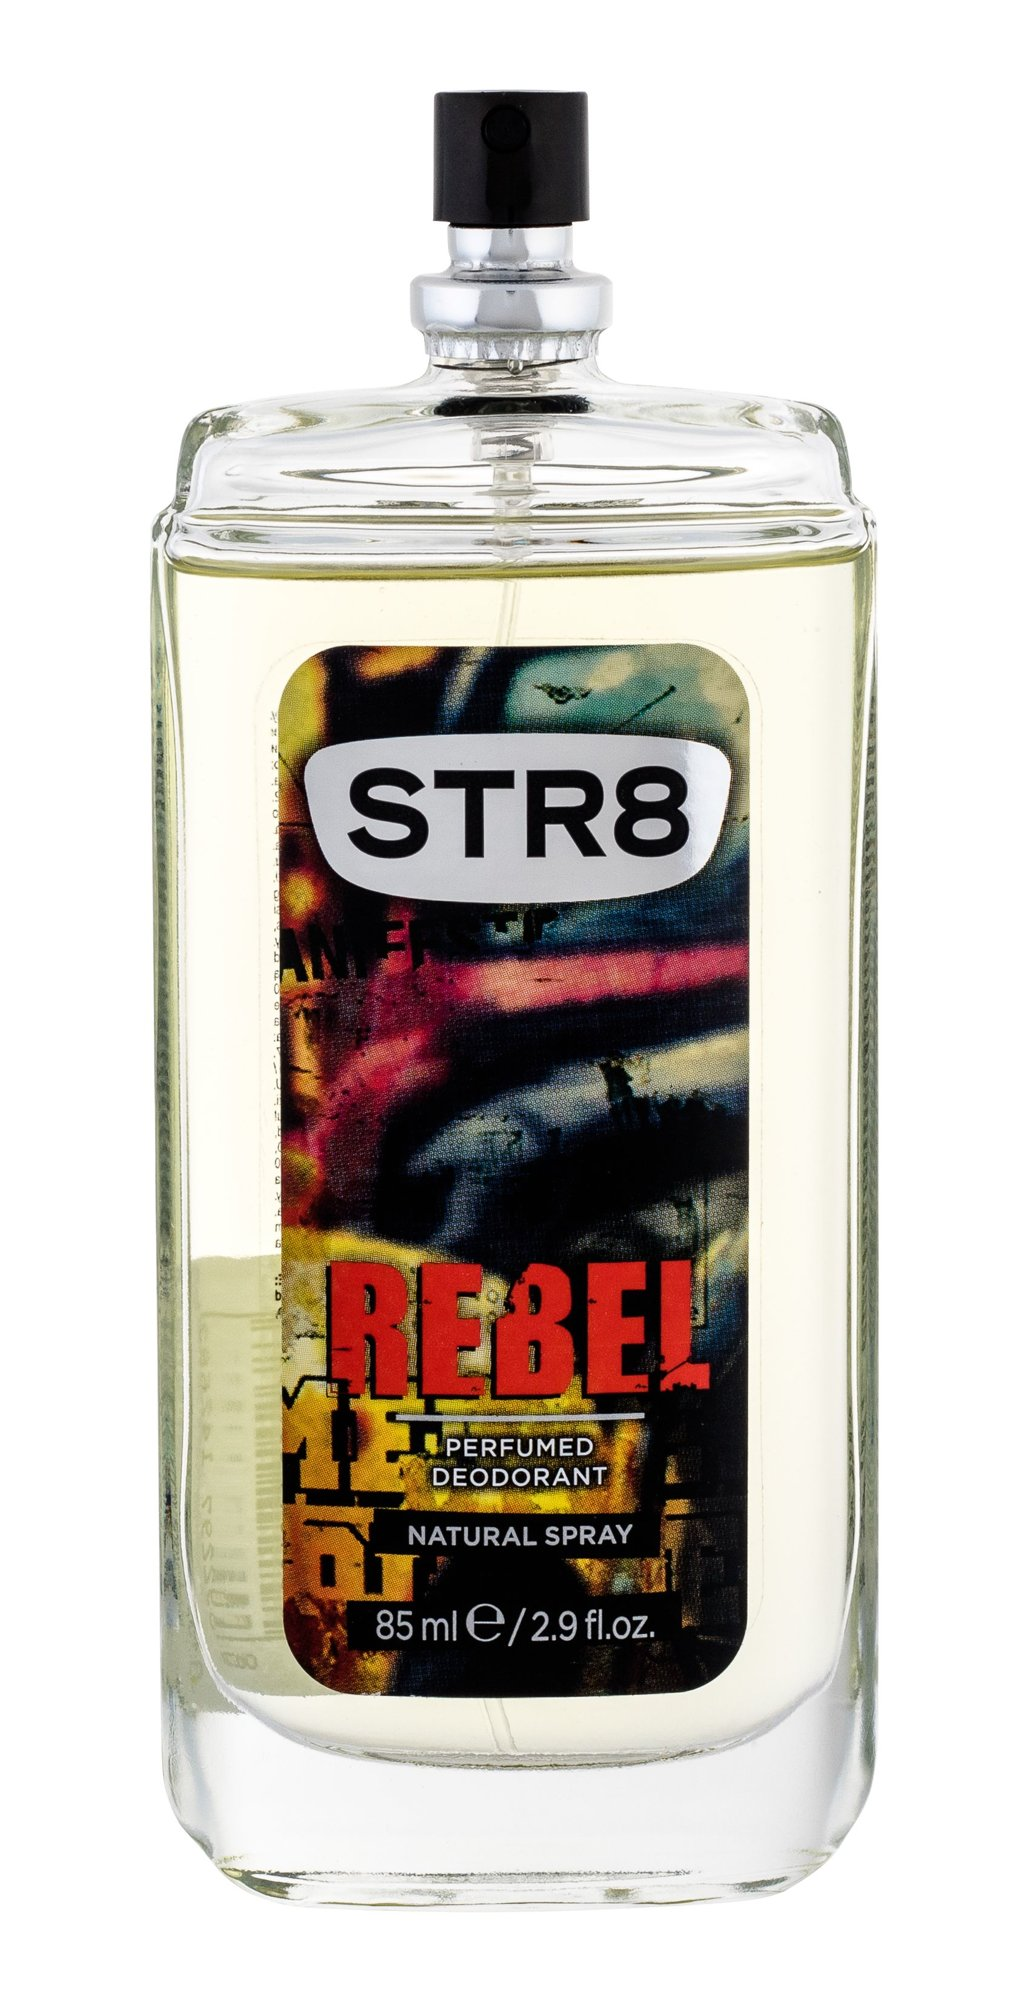 STR8 Rebel Deodorant 85ml